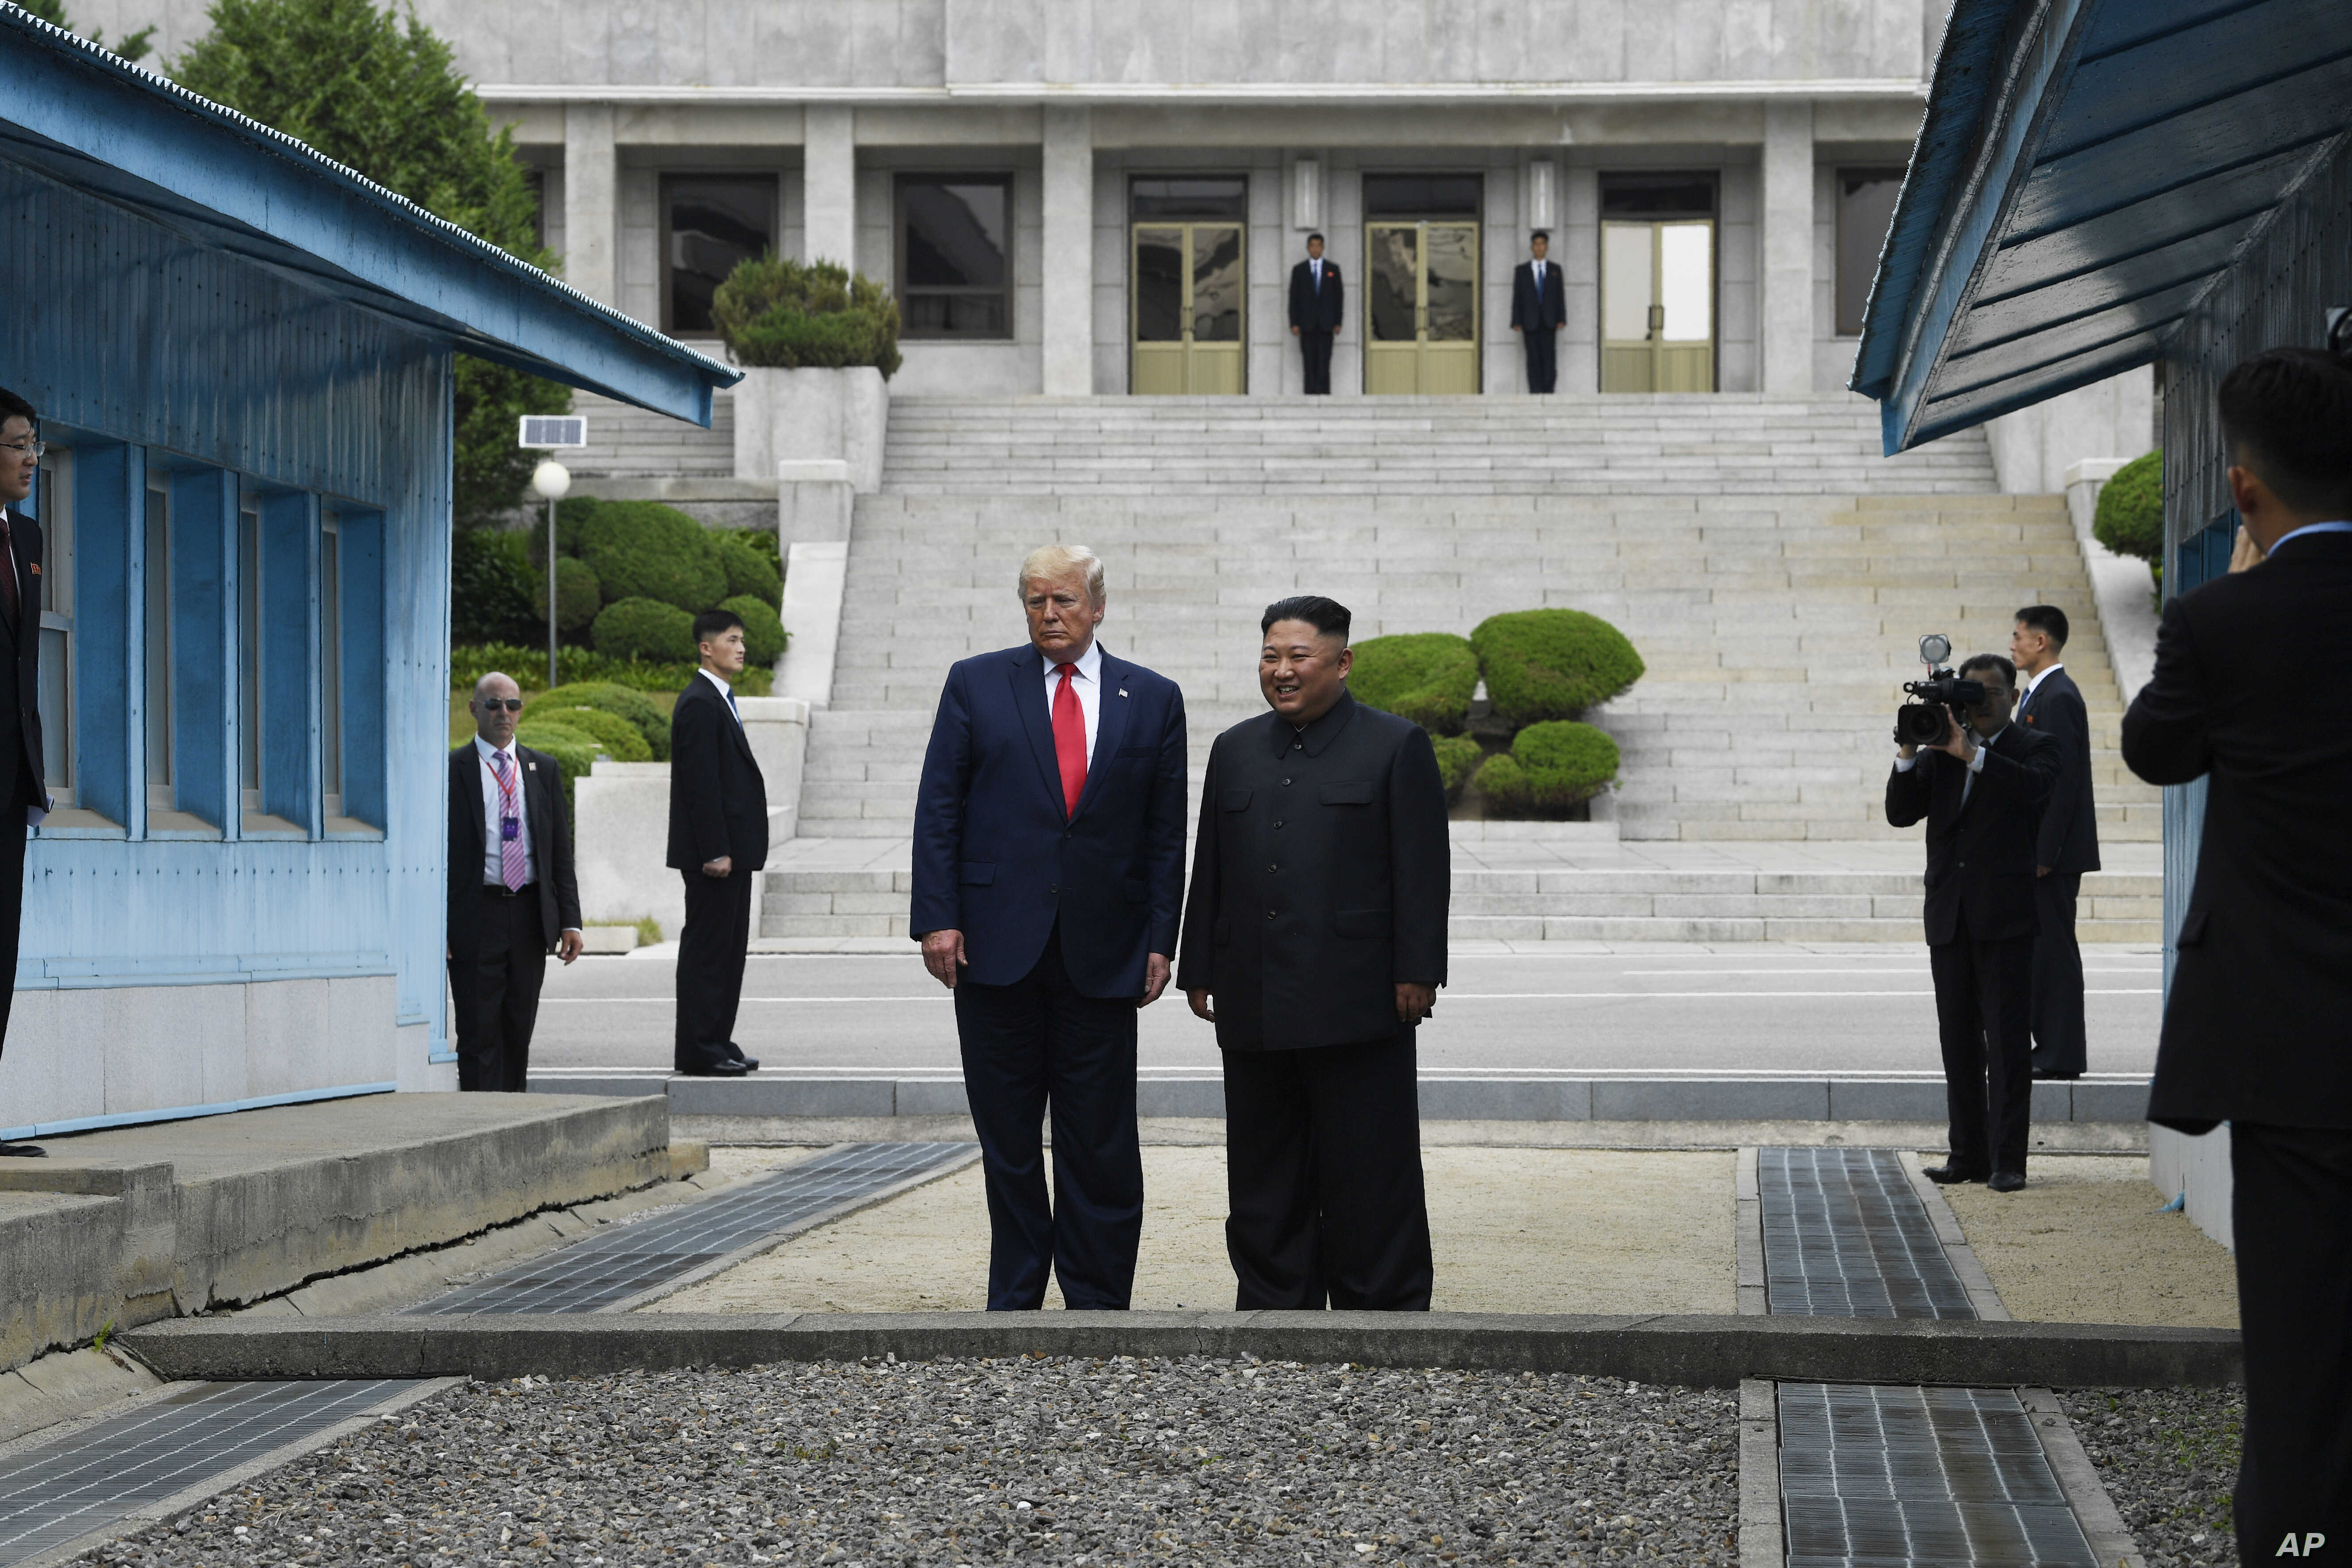 President Donald Trump and North Korean leader Kim Jong Un stand on the North Korean side in the Demilitarized Zone, Sunday, June 30, 2019 at Panmunjom. (AP Photo/Susan Walsh)